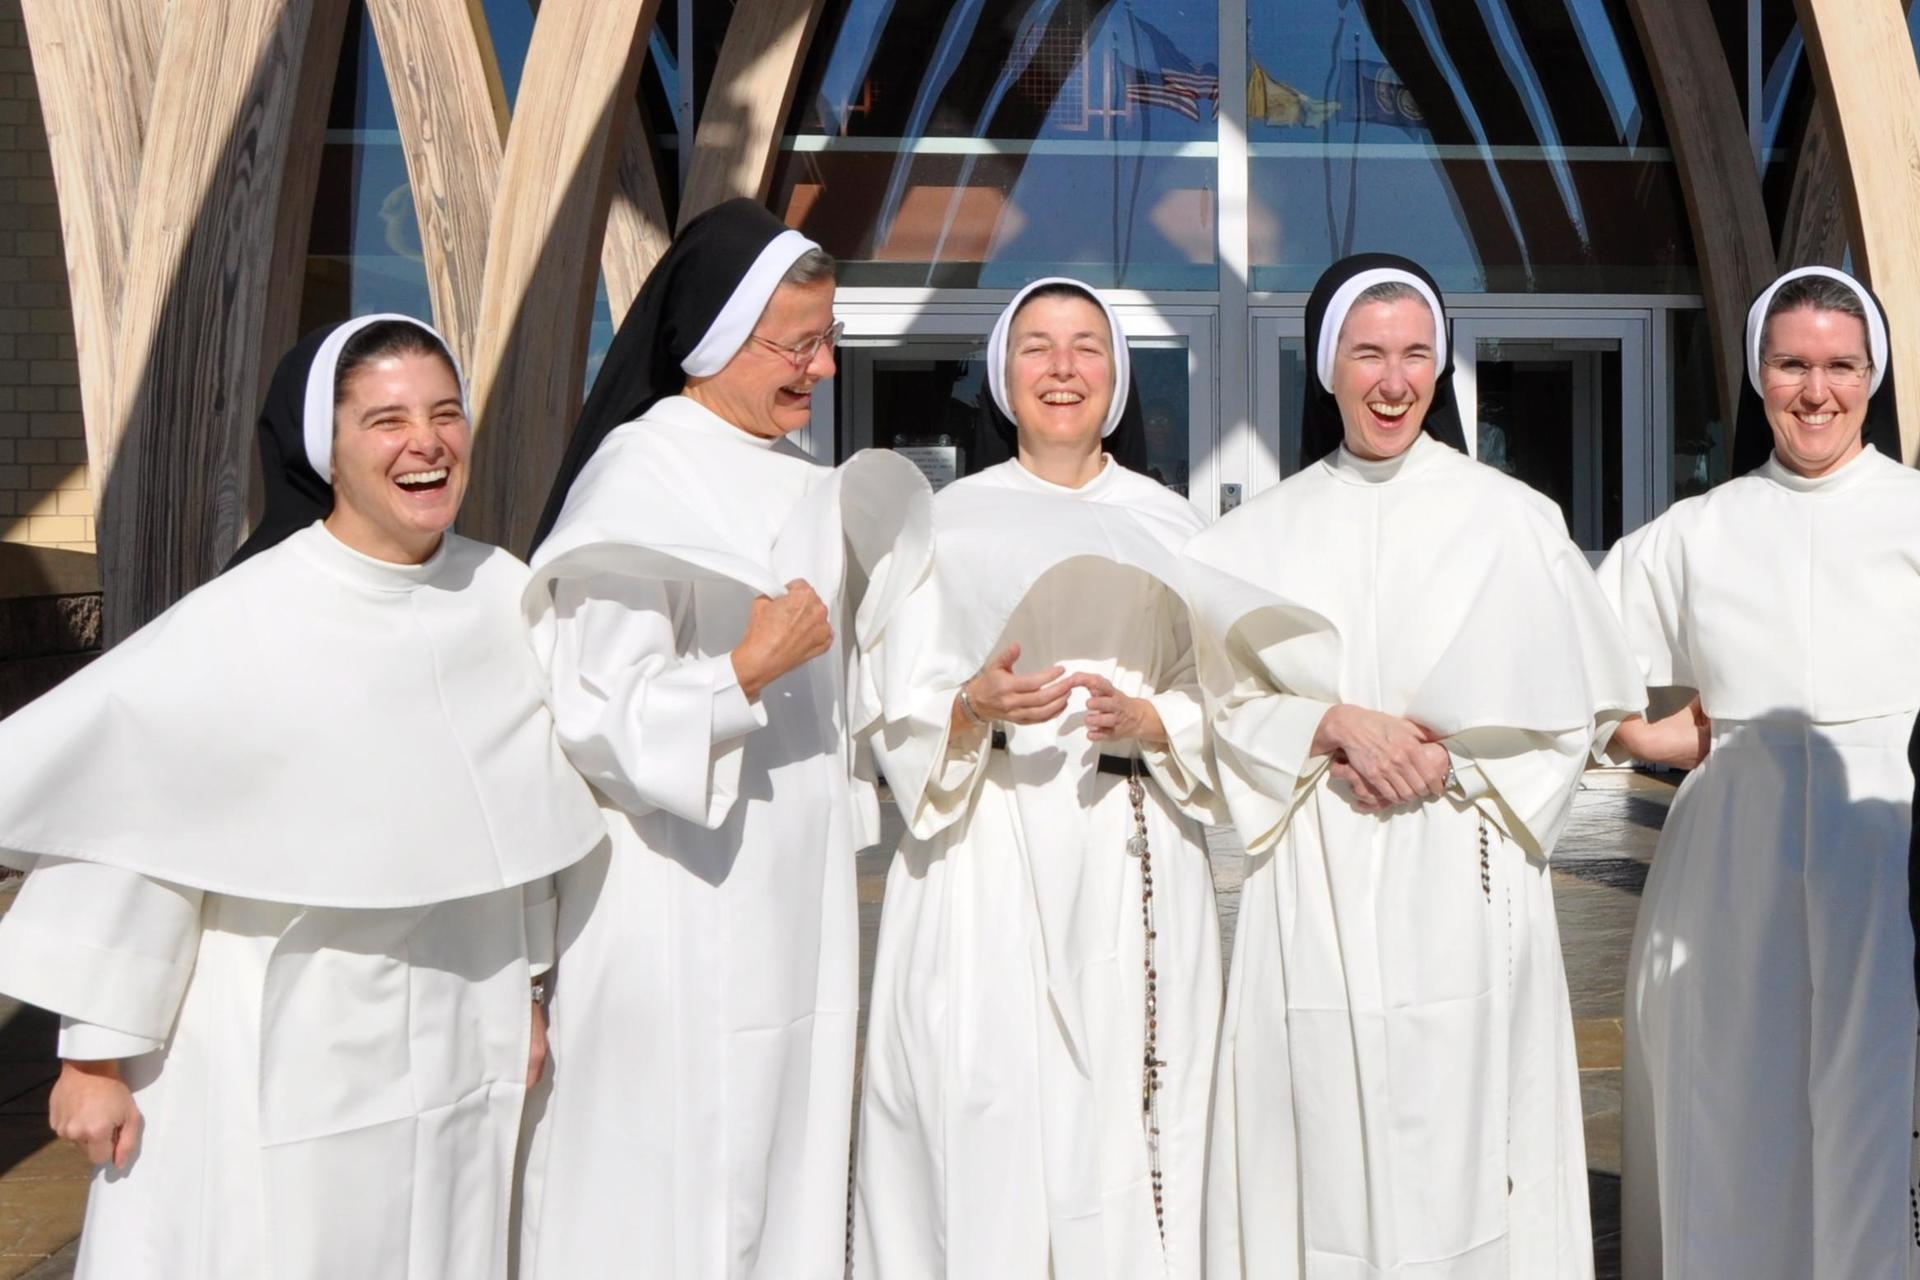 A group of Dominican sisters laughing